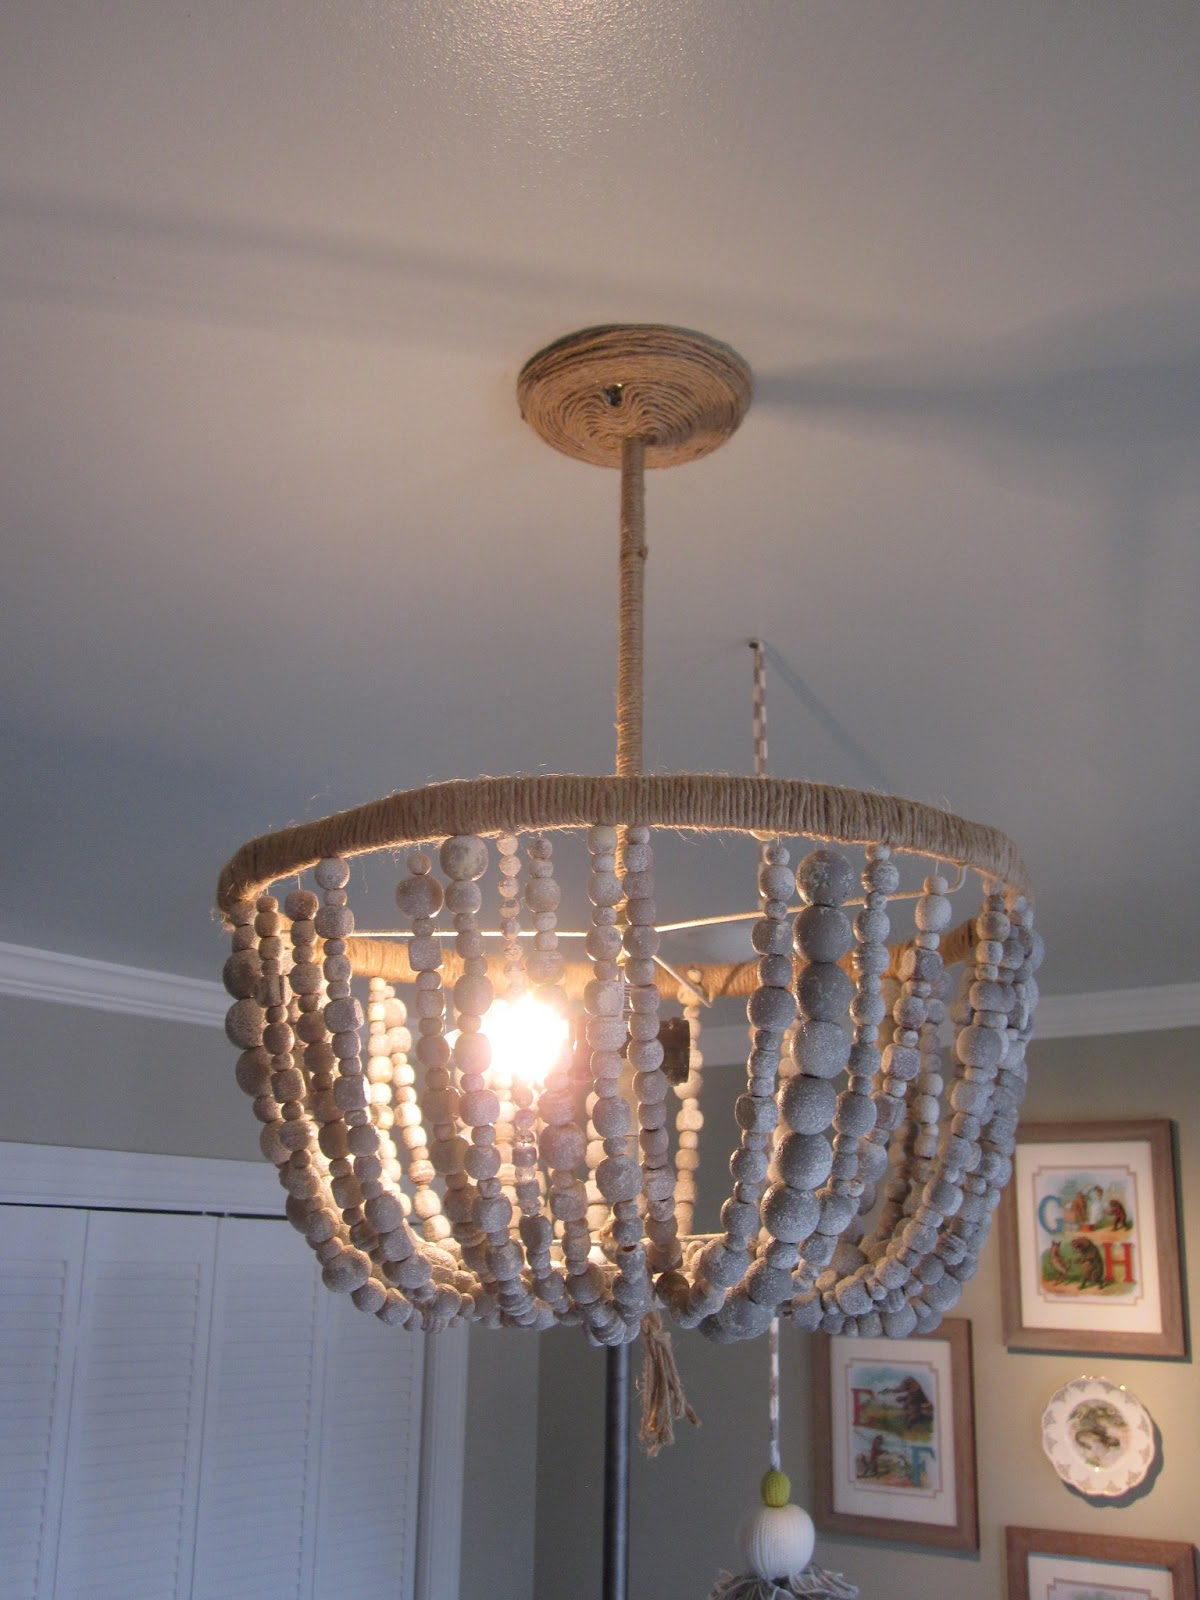 A Diy Nursery Light The Serena And Lily Malibu Chandelier Maggiegriffindesign